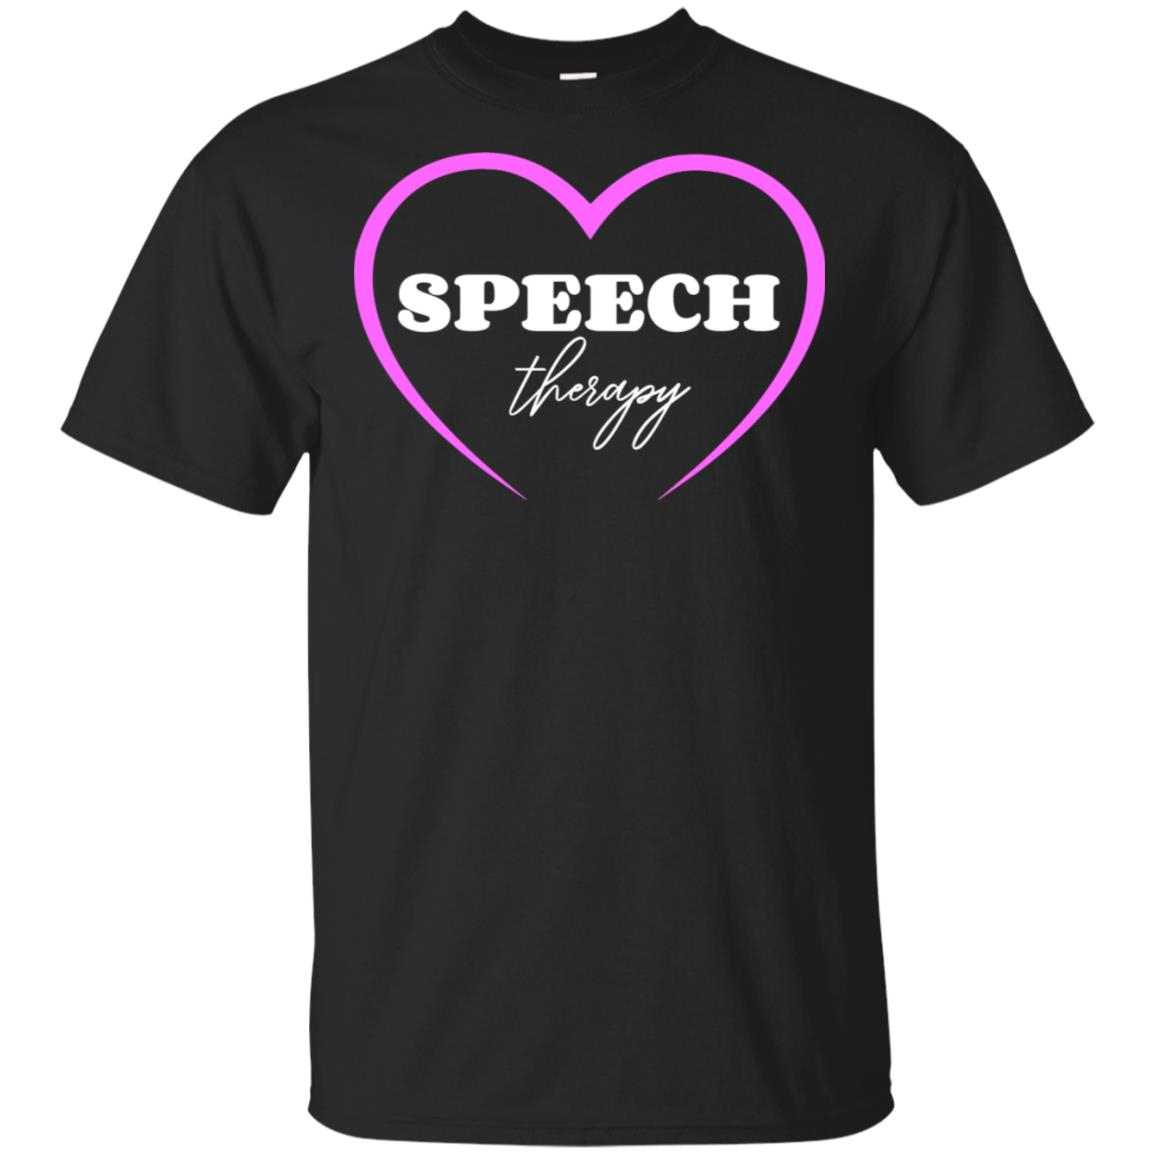 Speech Therapy Gift for Women with Hearts Unisex Short Sleeve